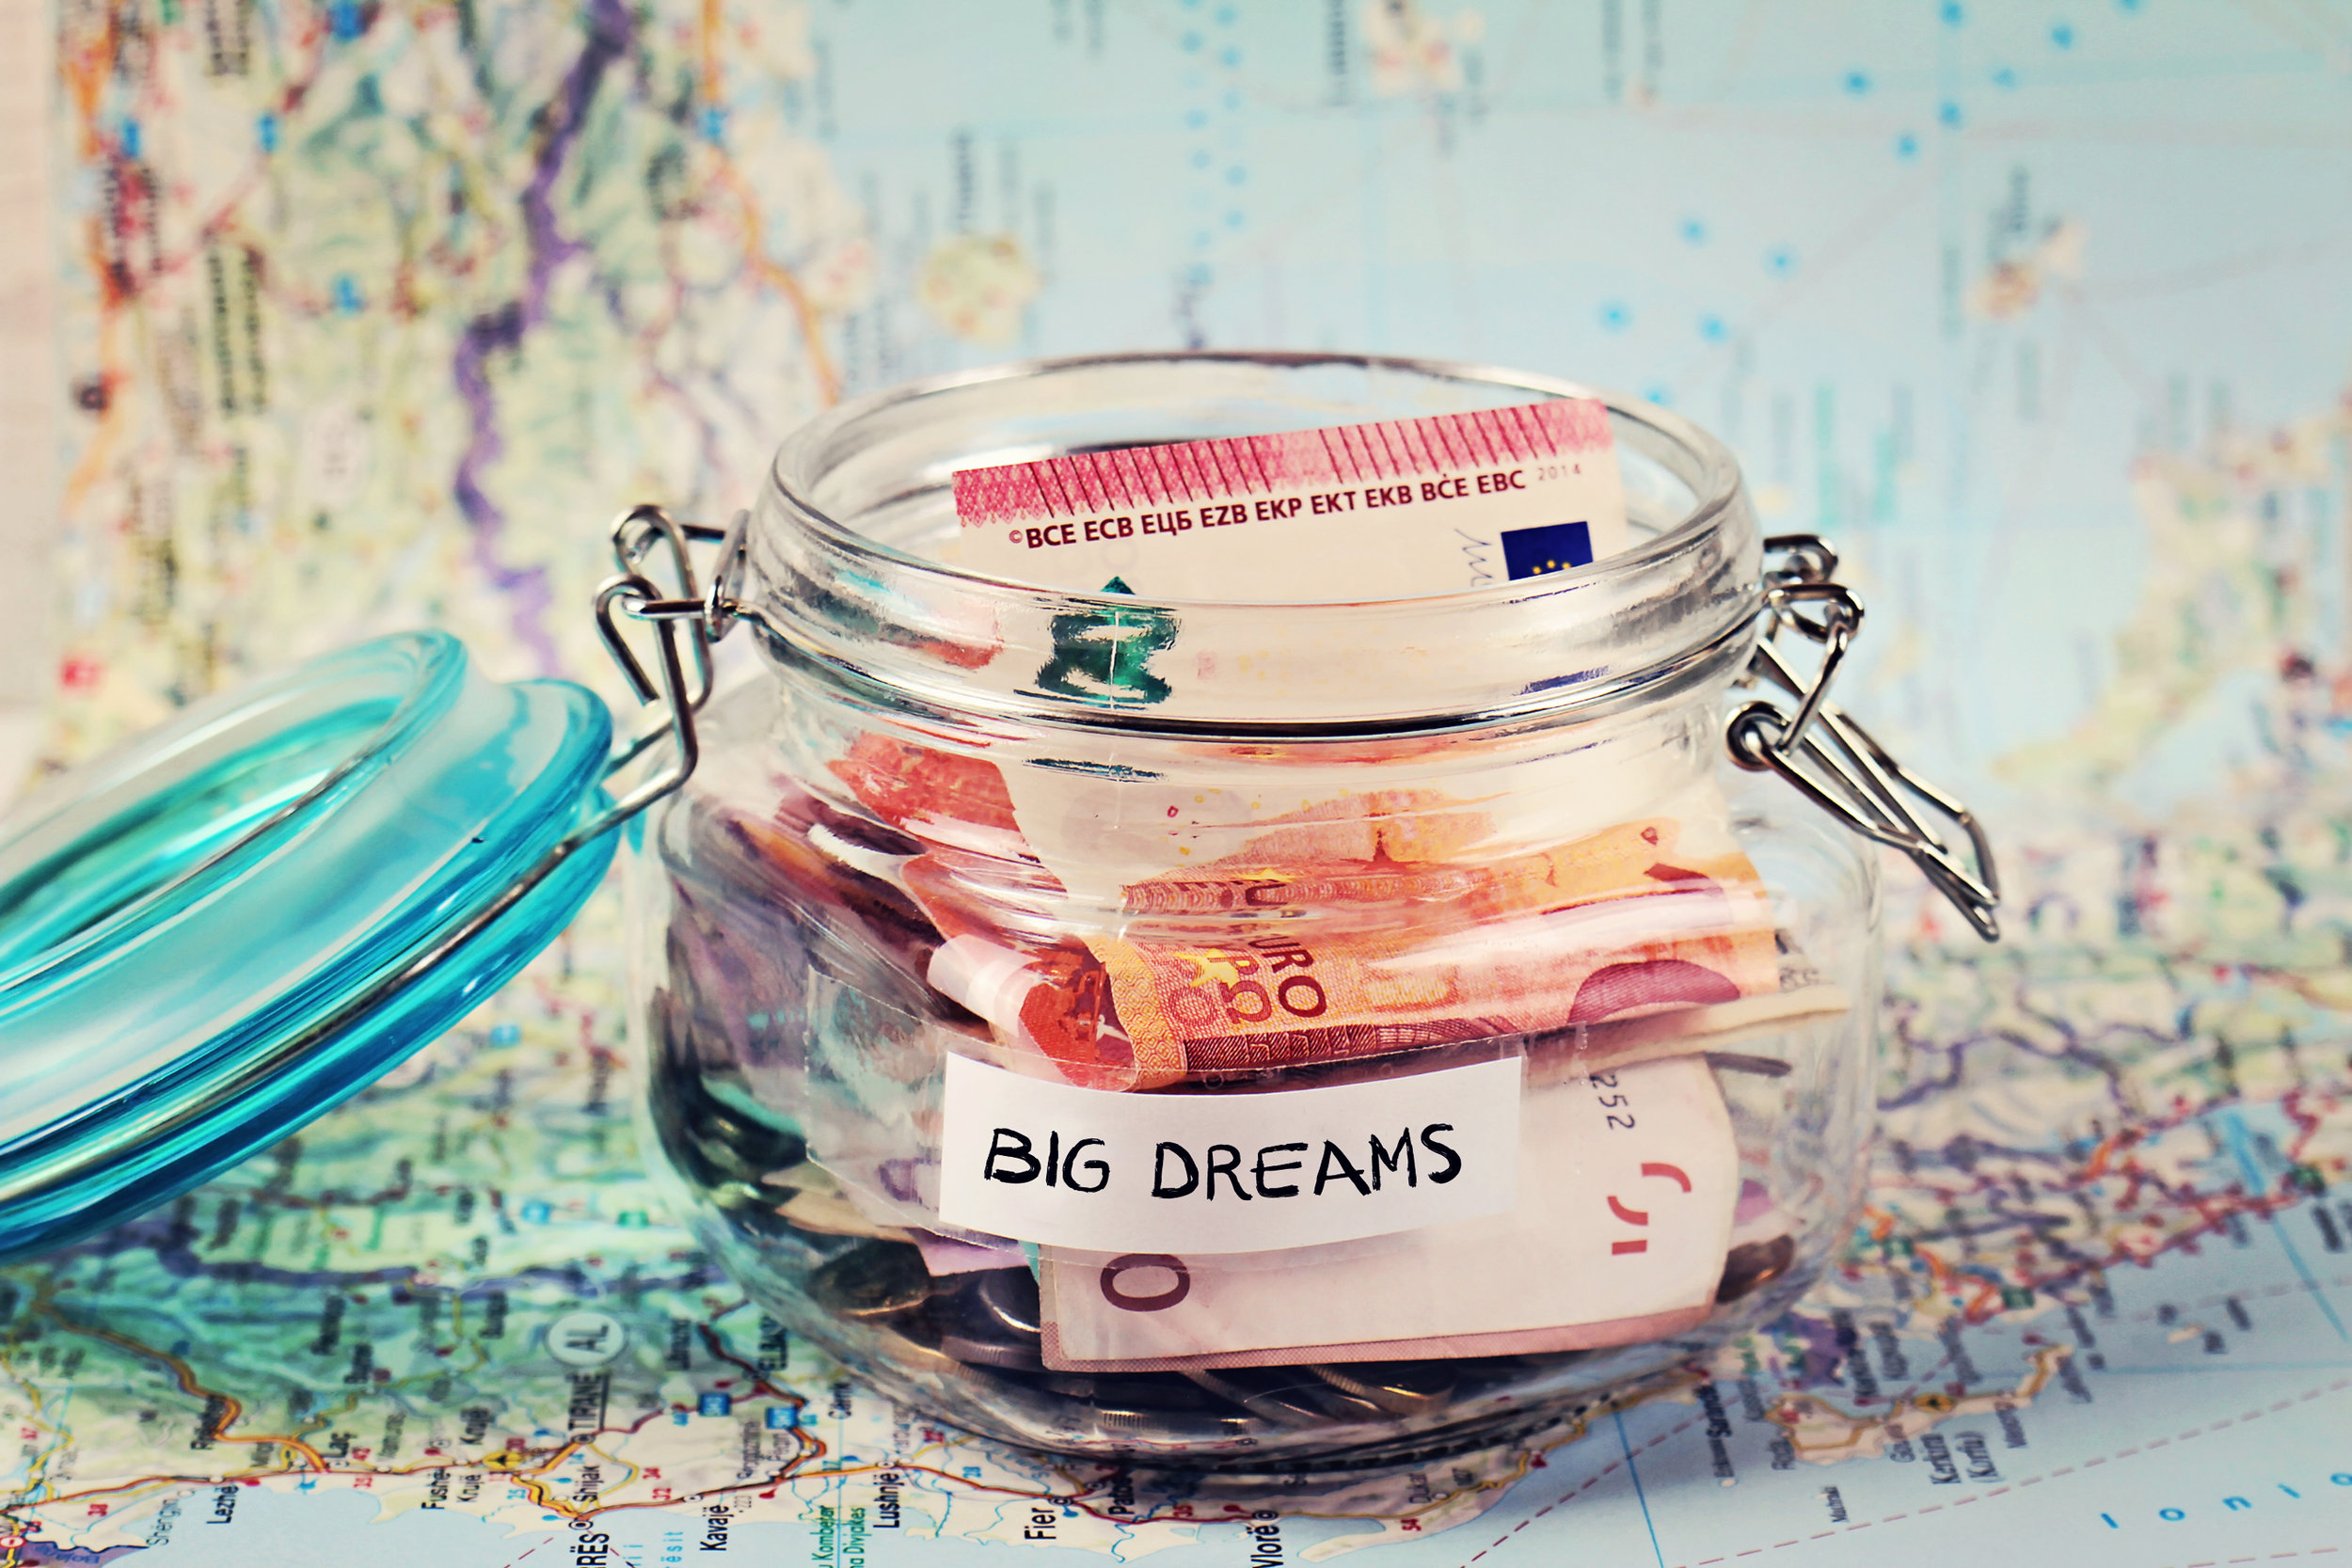 Piggy-bank-woth-words-Big-Dreams-on-travel-map.-540827728_2700x1800.jpeg